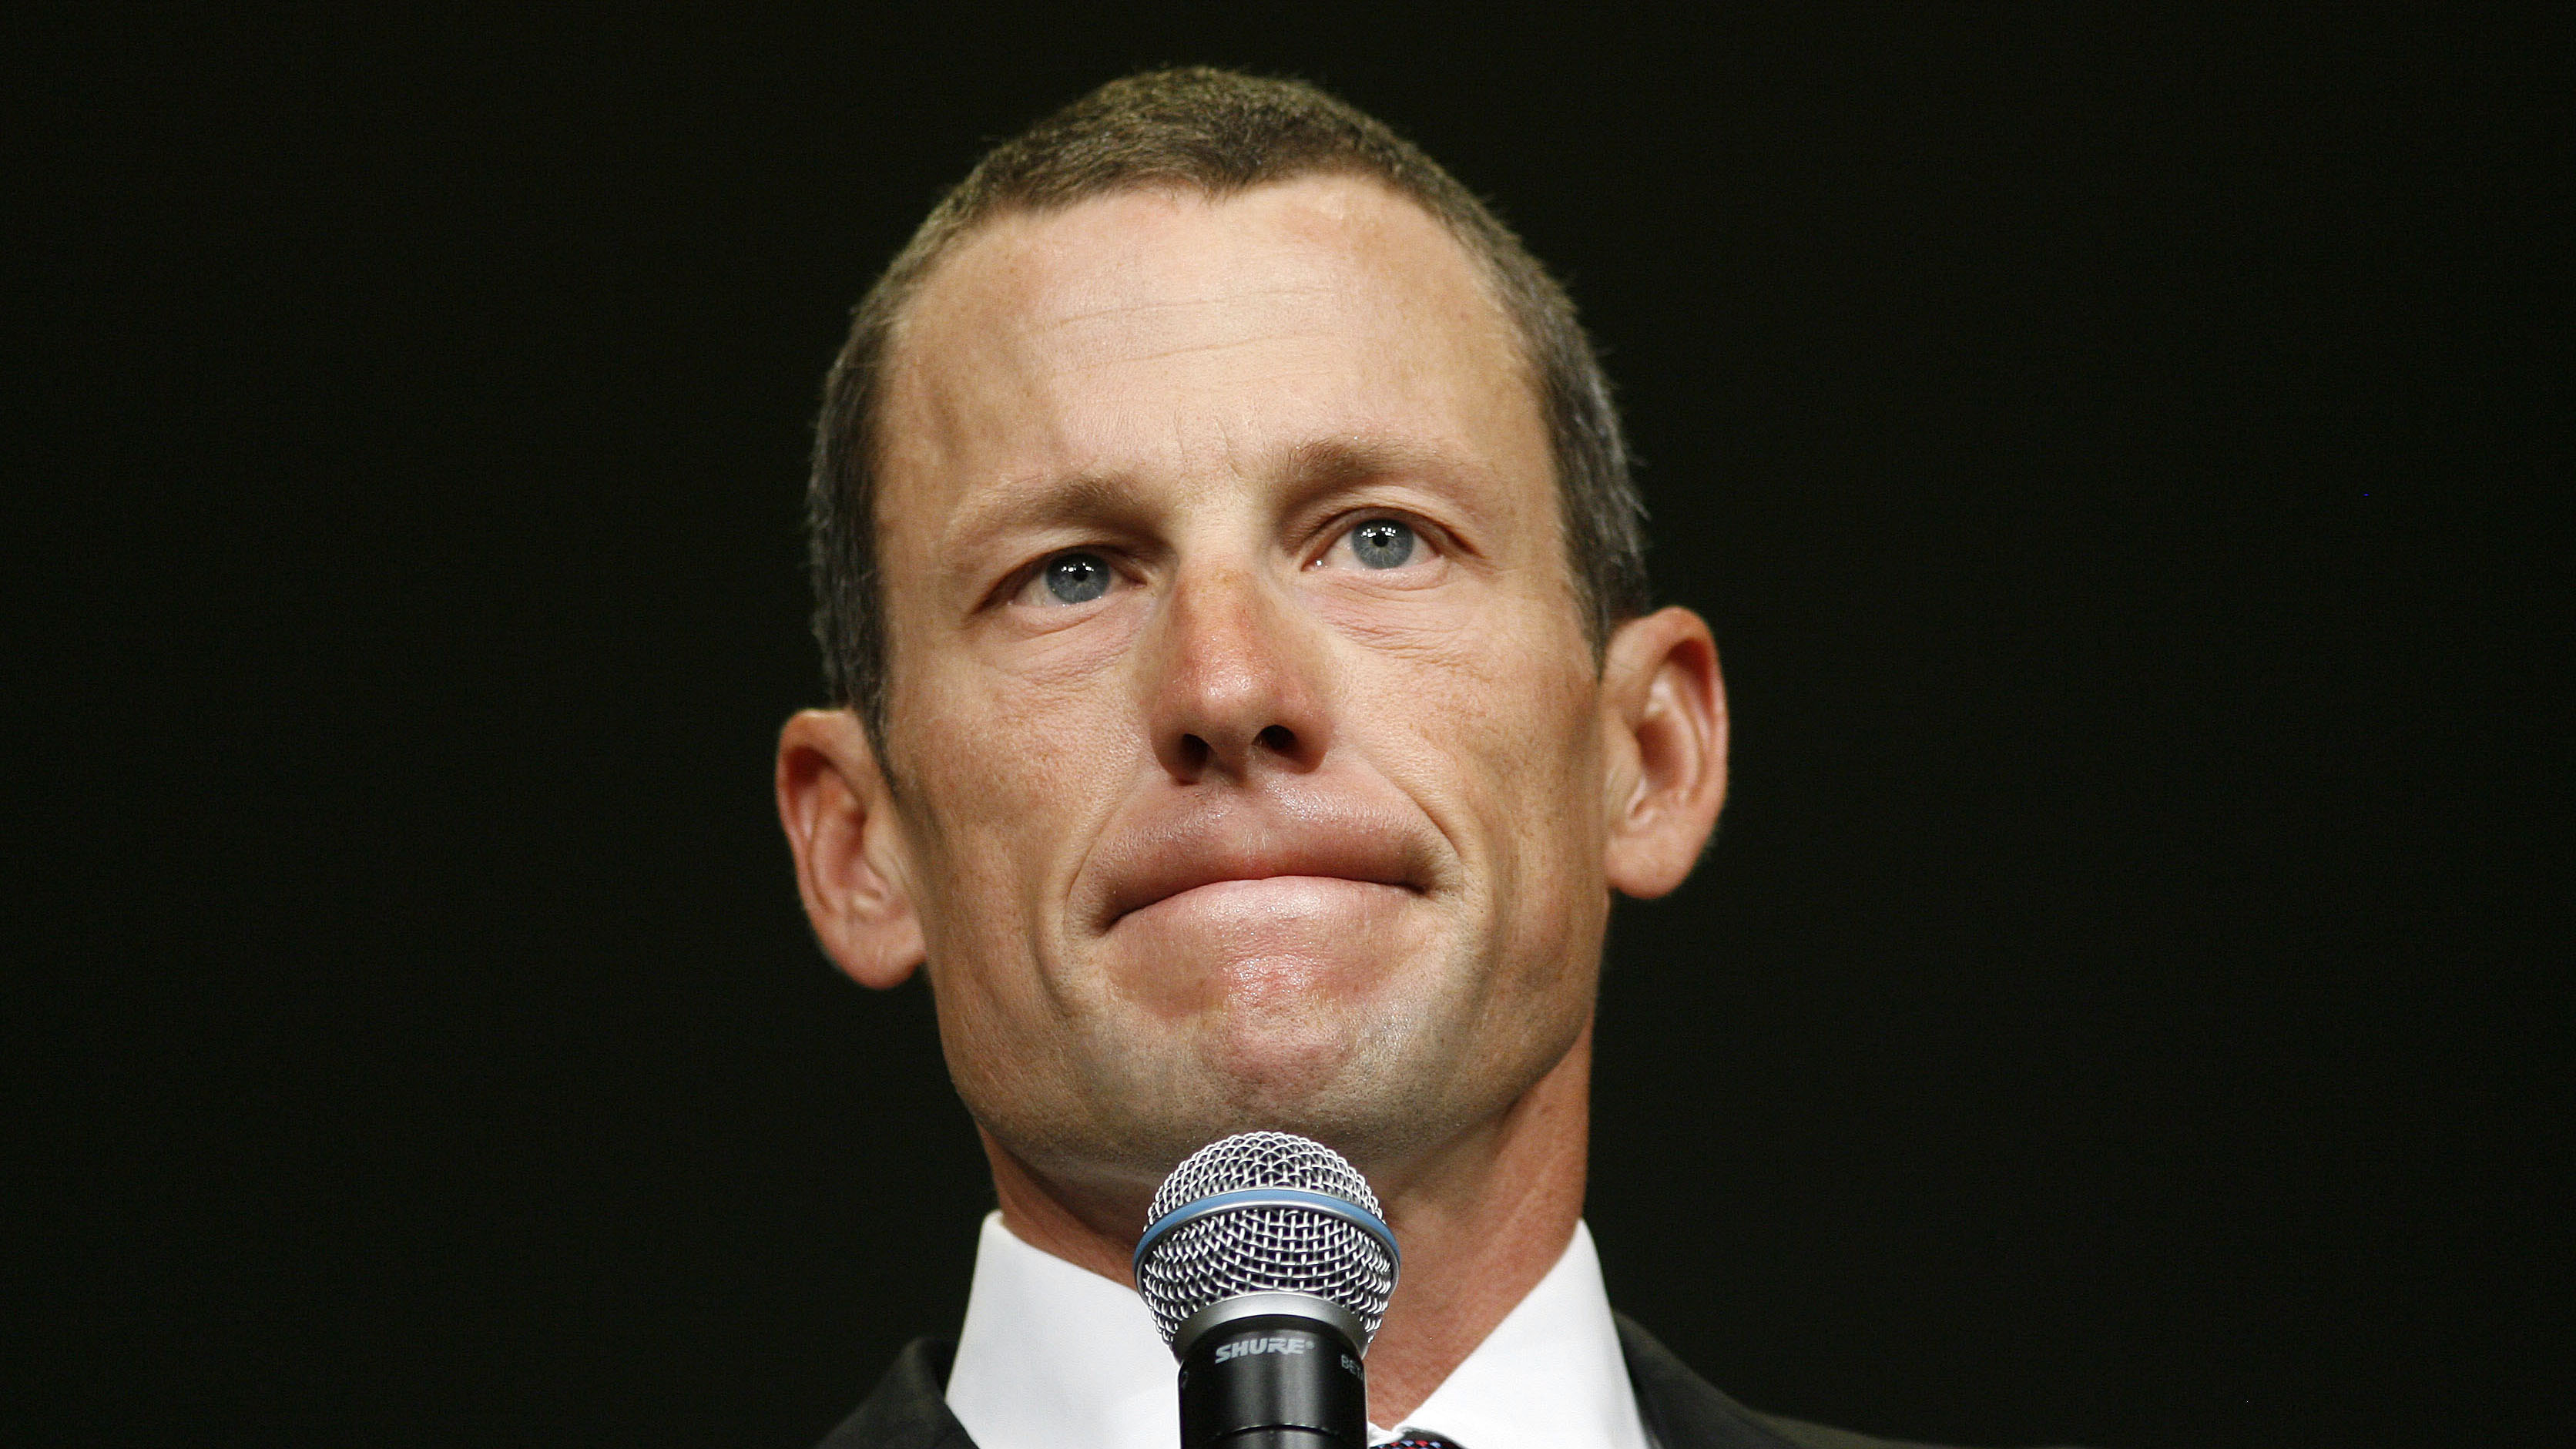 a report on lance armstrong an american professional road racing cyclist American professional road racing cyclist lance armstrong has agreed to pay $5 million to the us government to settle a long-running lawsuit that was to.